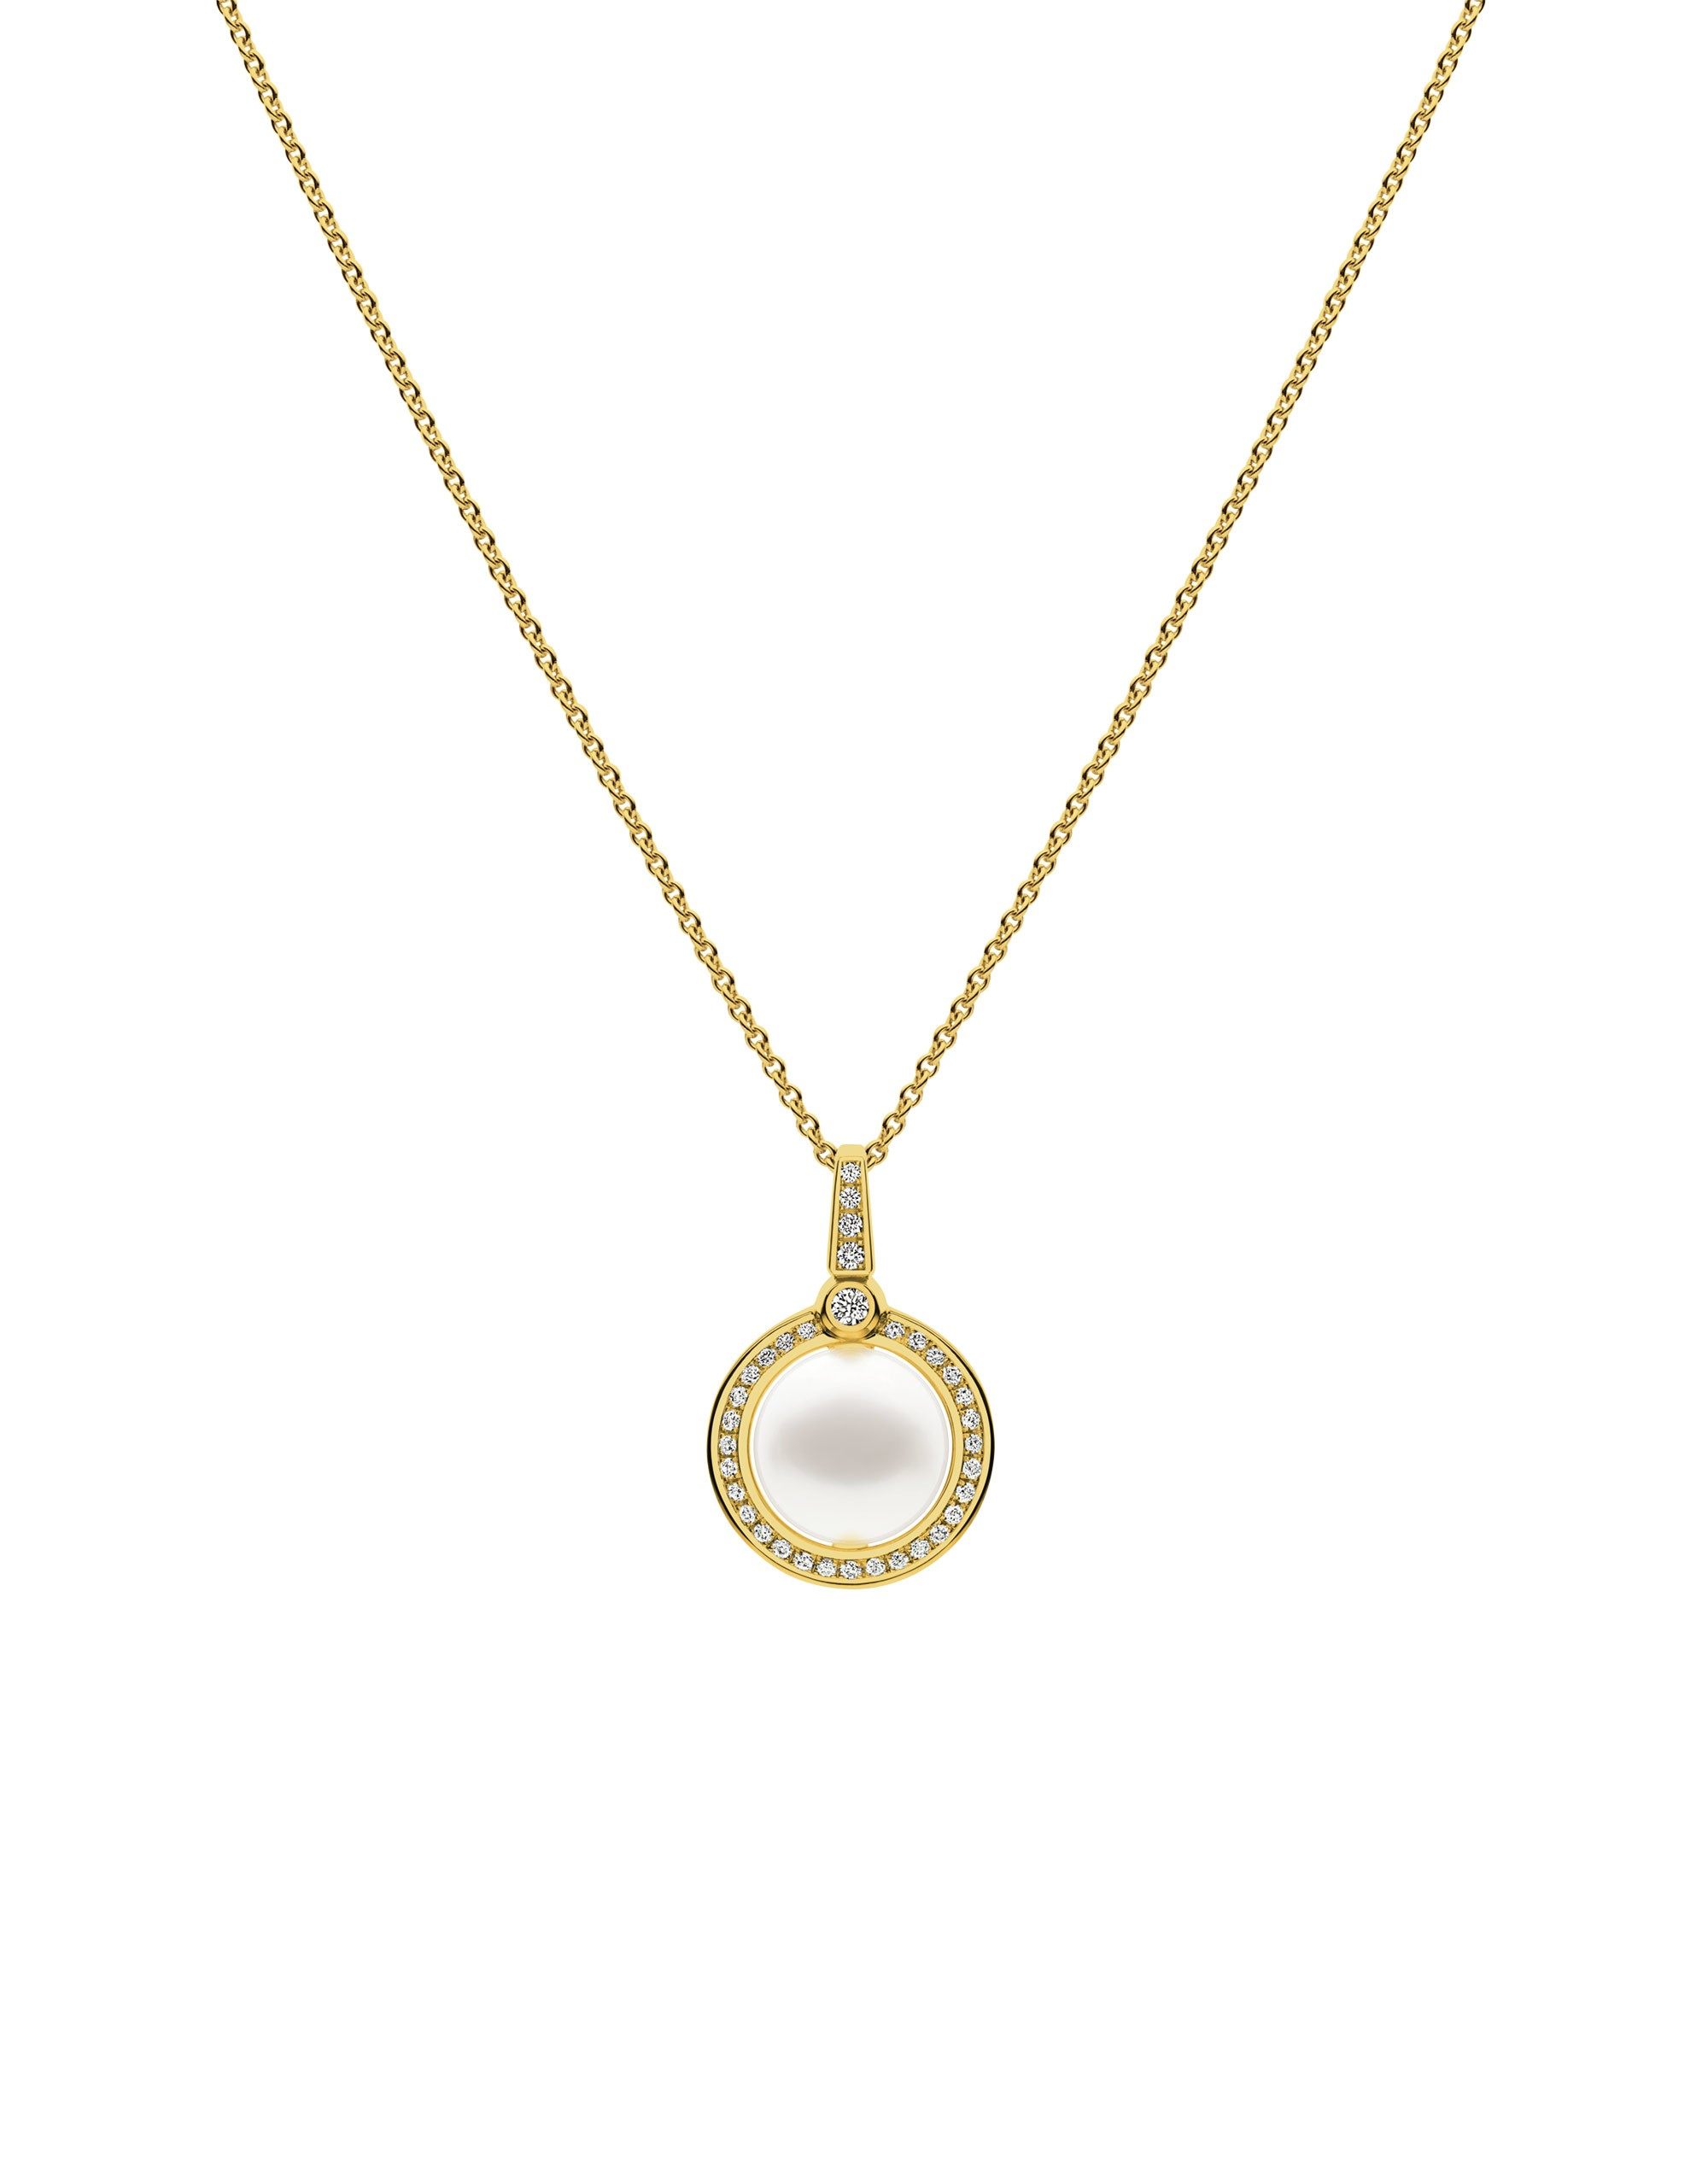 Kailis Divine Pearl and diamond pendant